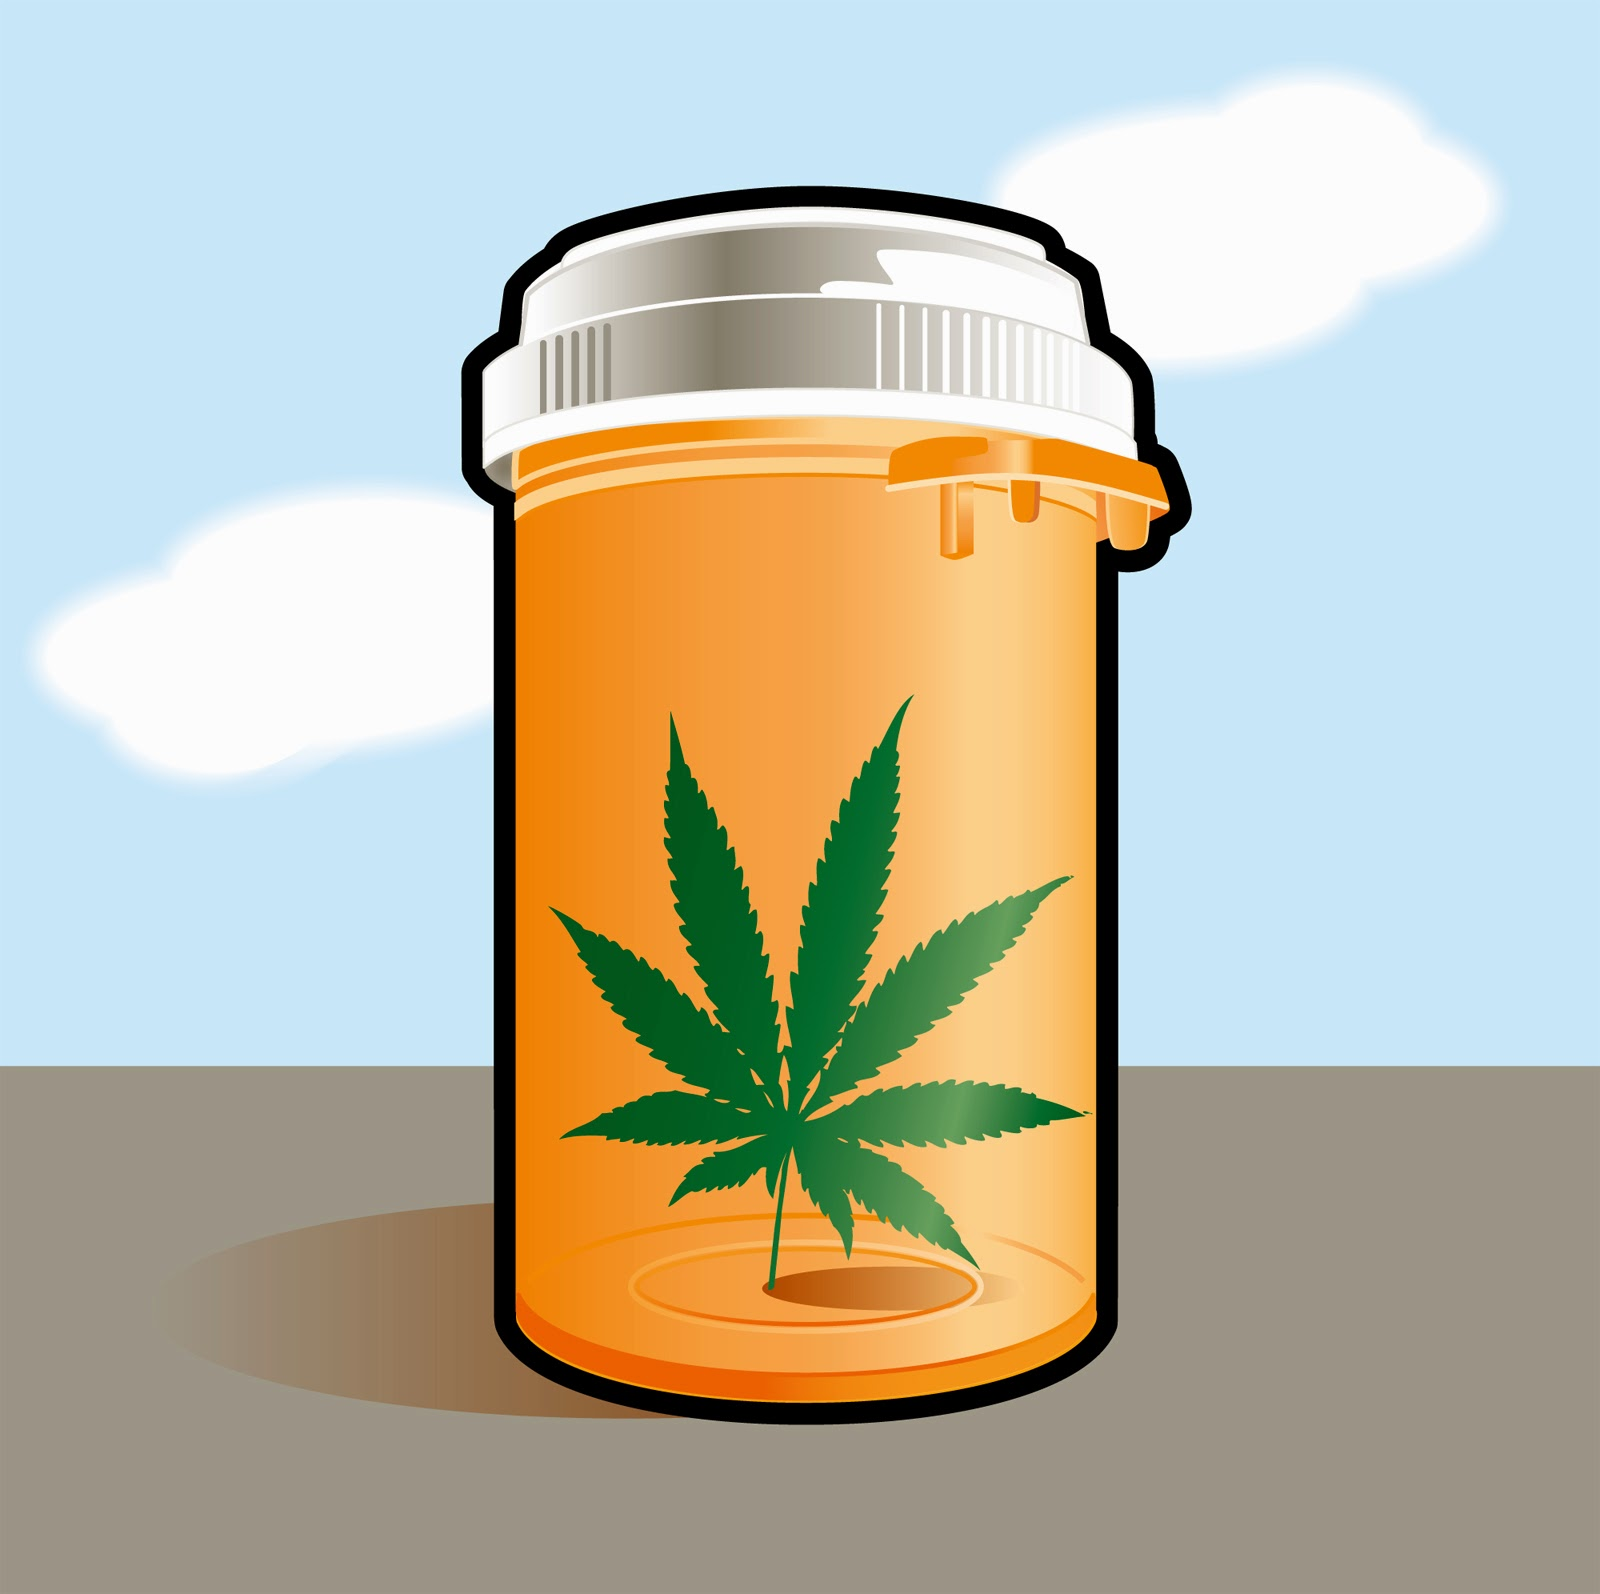 Cartoon of a medicine bottle with a marijuana leaf inside.